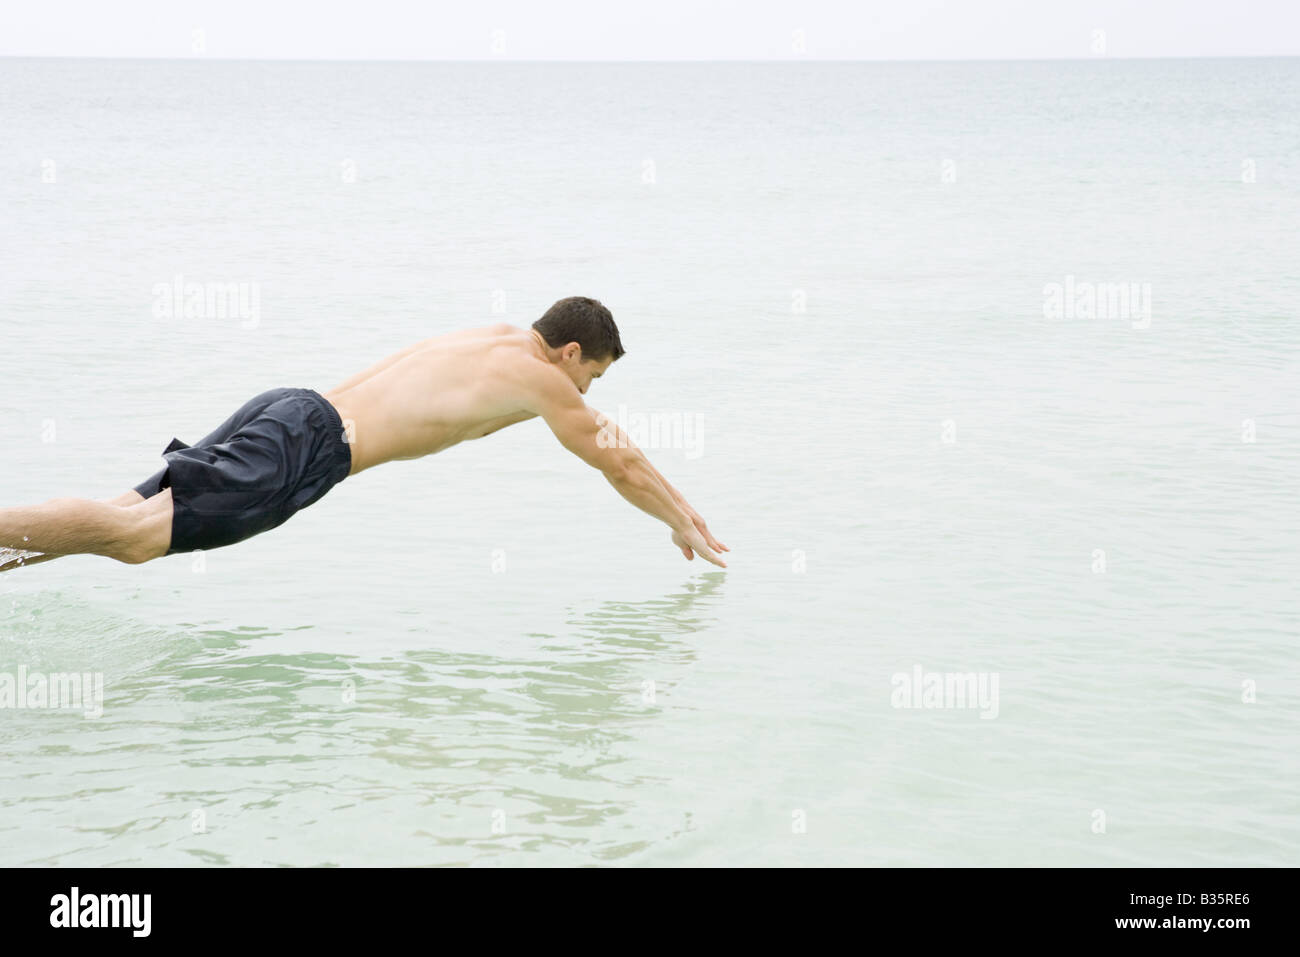 Man diving into the ocean, side view - Stock Image